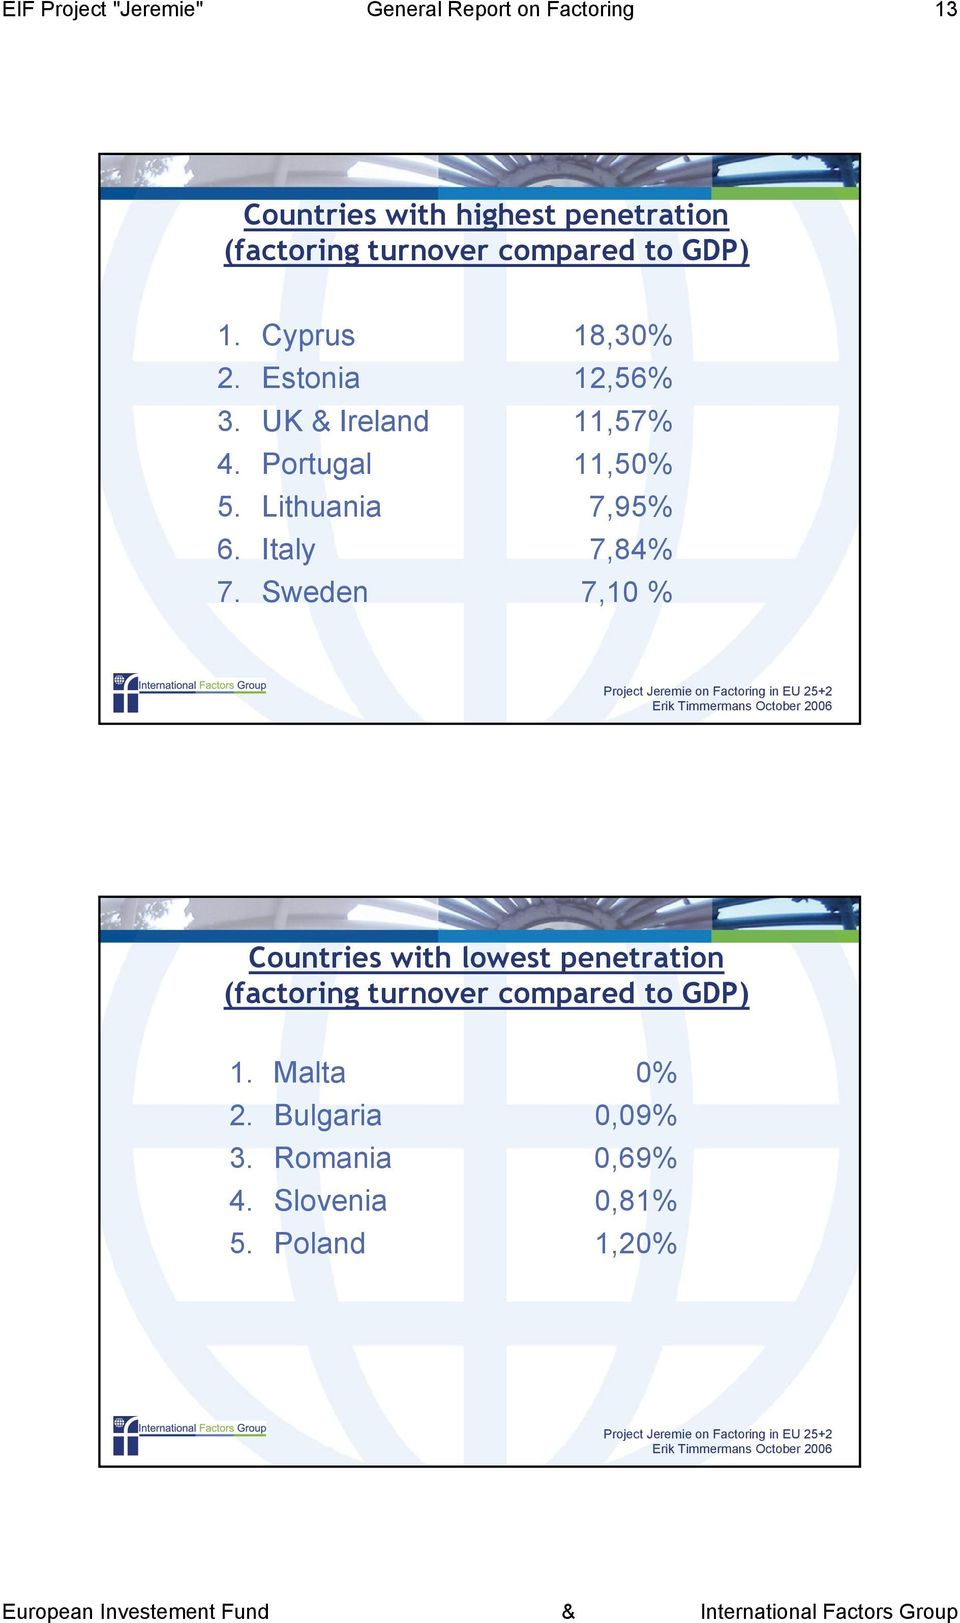 Portugal 11,50% 5. Lithuania 7,95% 6. Italy 7,84% 7.